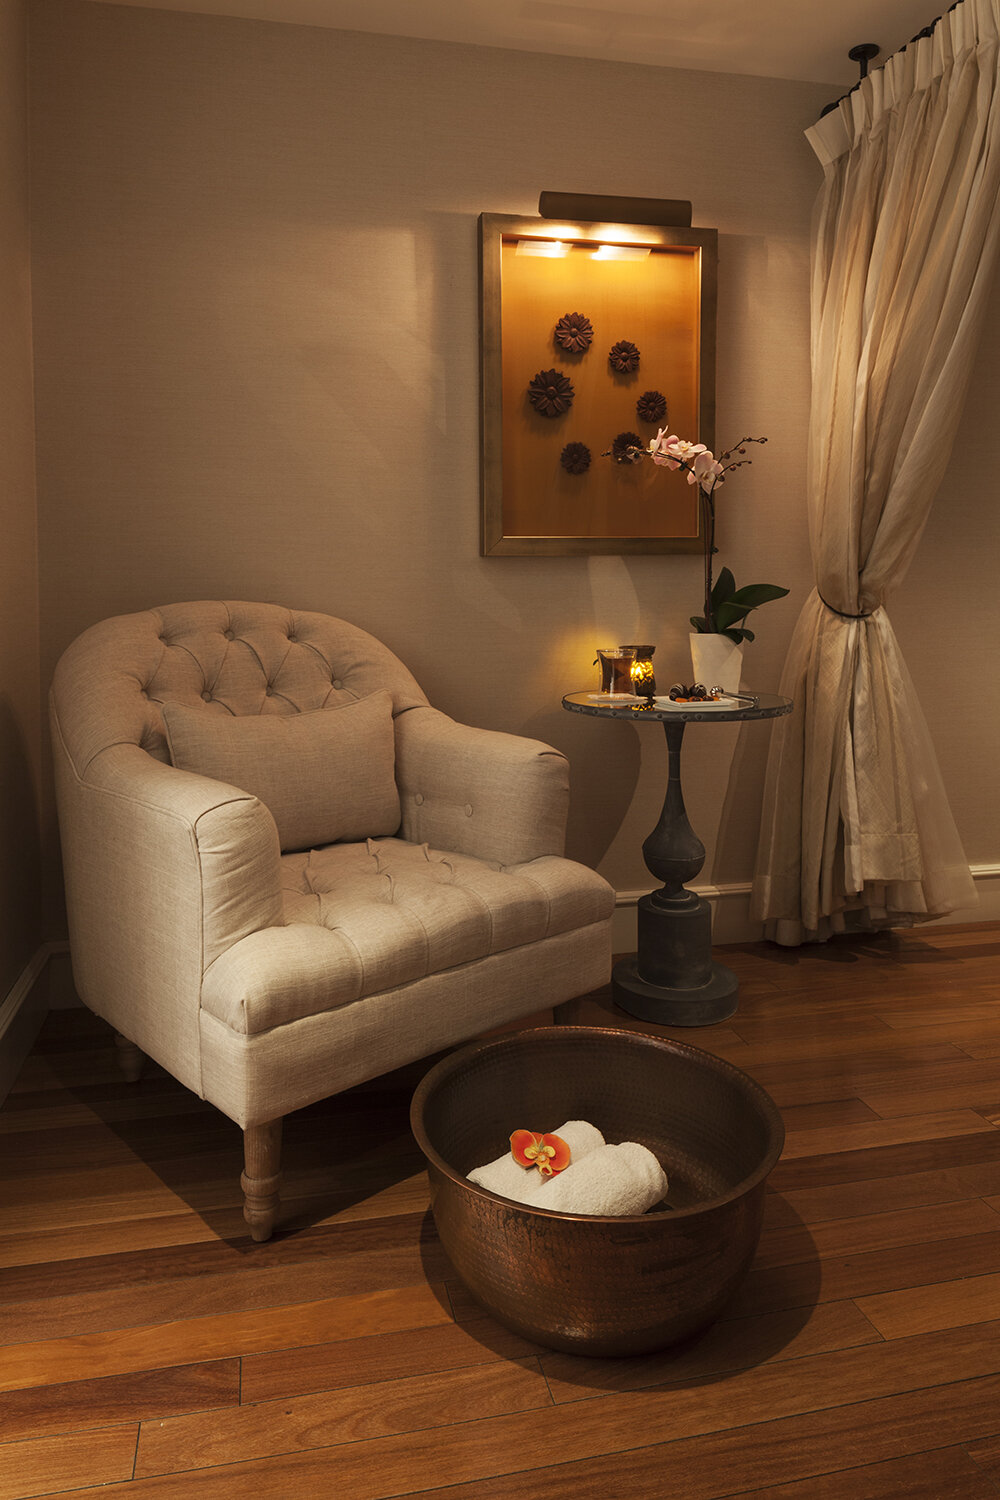 Guests can also enjoy relaxing beauty treatments such as pedicures.